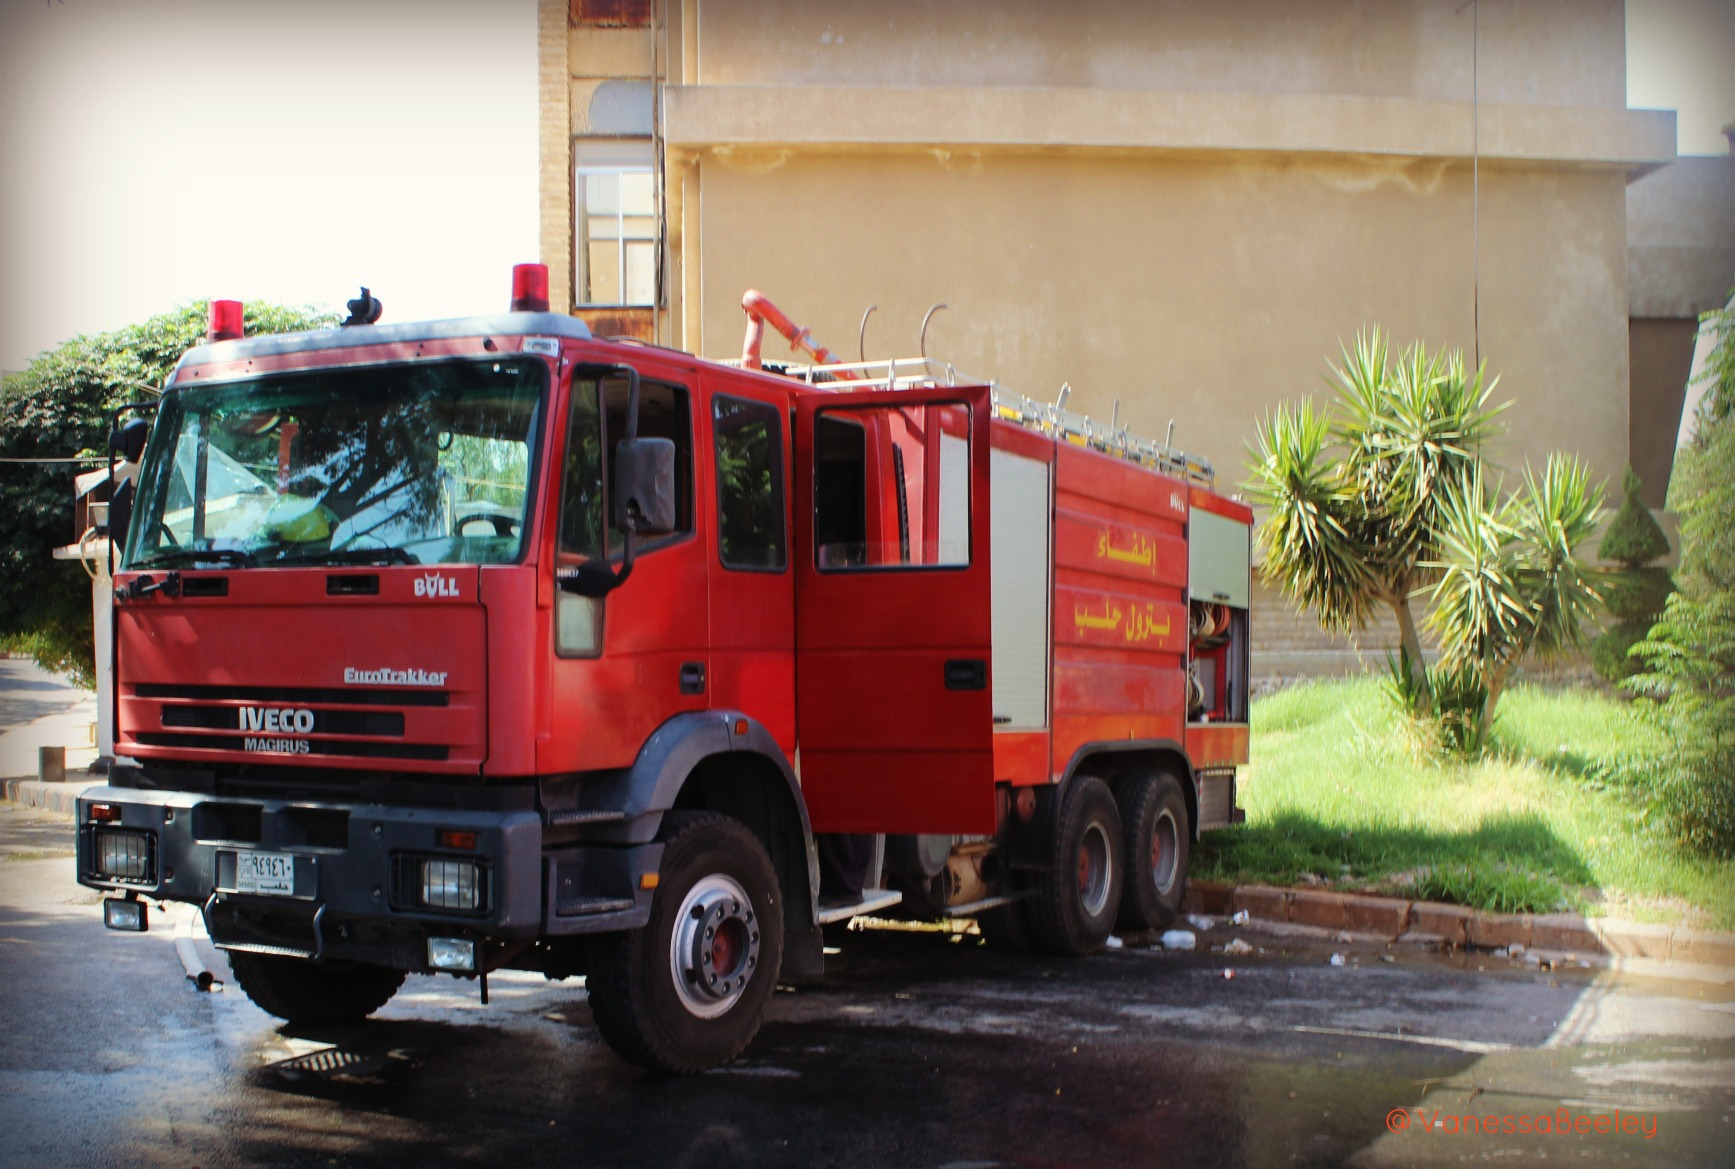 One of the real Syria Civil Defense's fire engines parked at their unit in western Aleppo. (Photo: Vanessa Beeley)